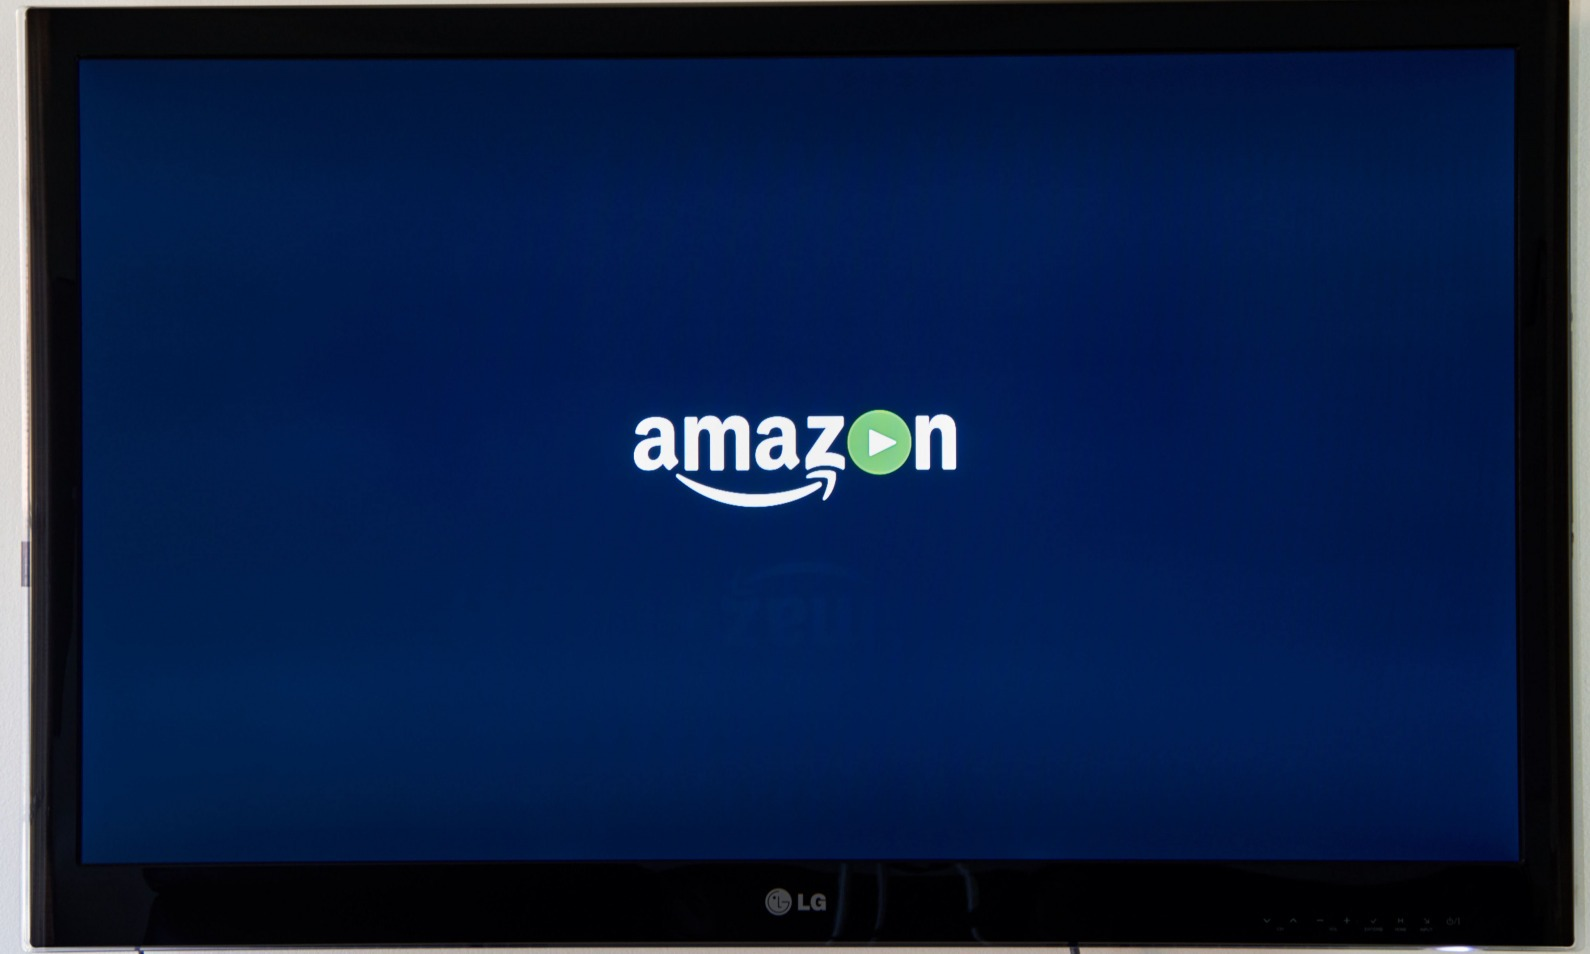 How To Watch Amazon Prime On Apple Tv With The Prime Video App